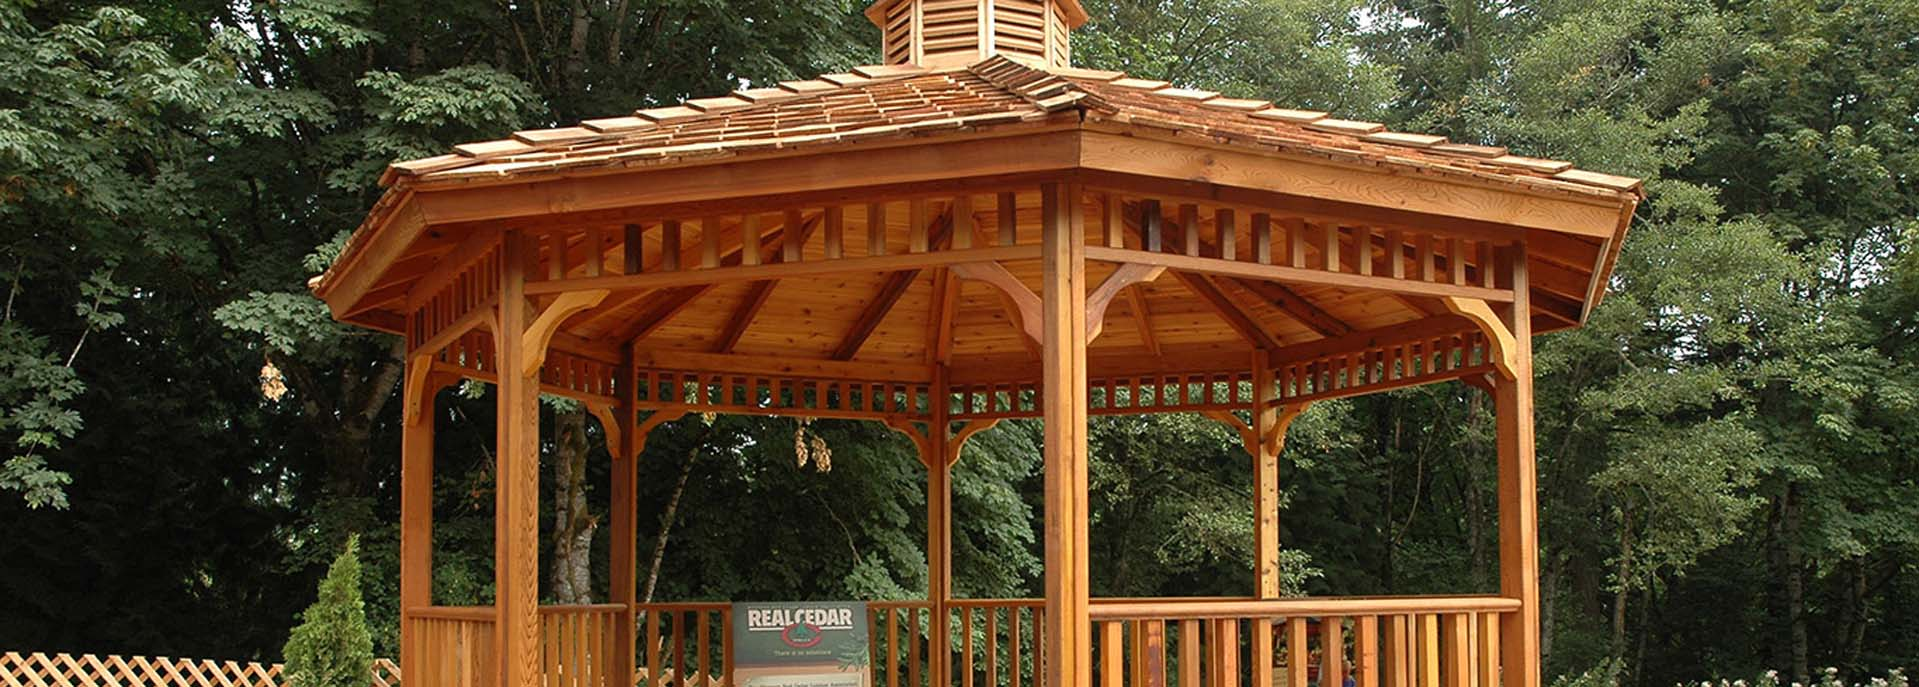 Western Red Cedar Gazebo | Canadian Wood